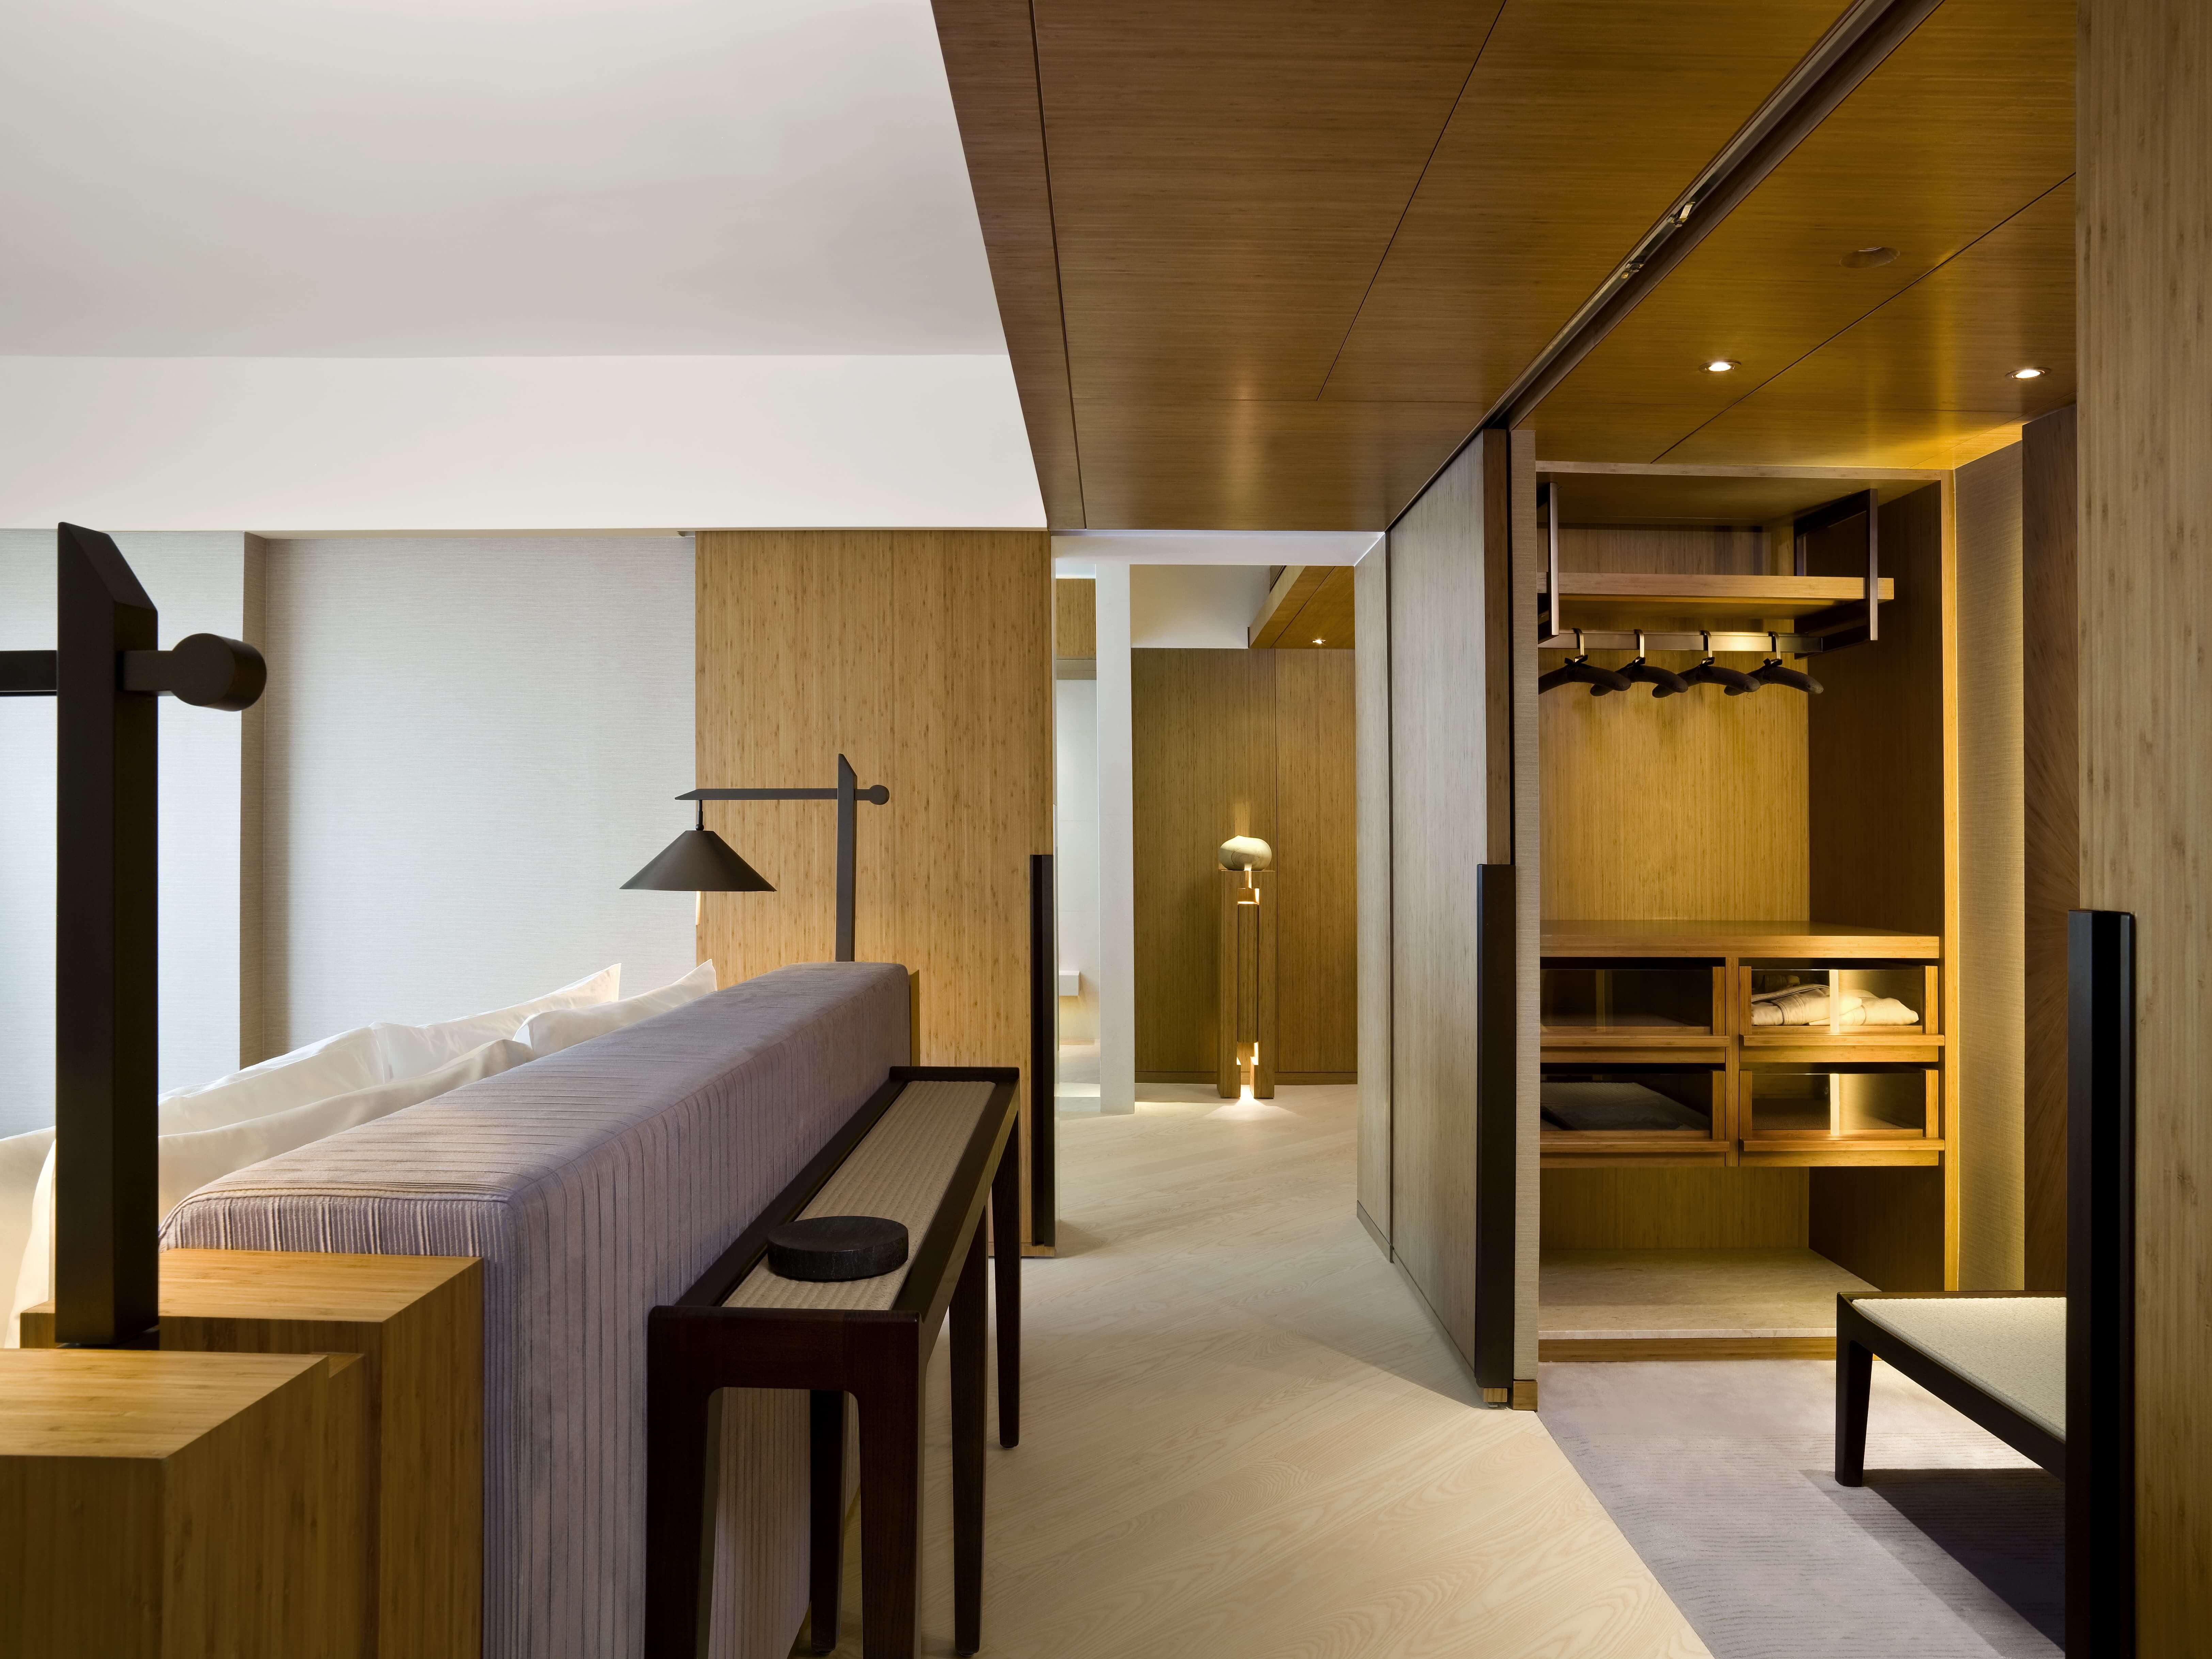 Penthouse Changing Area